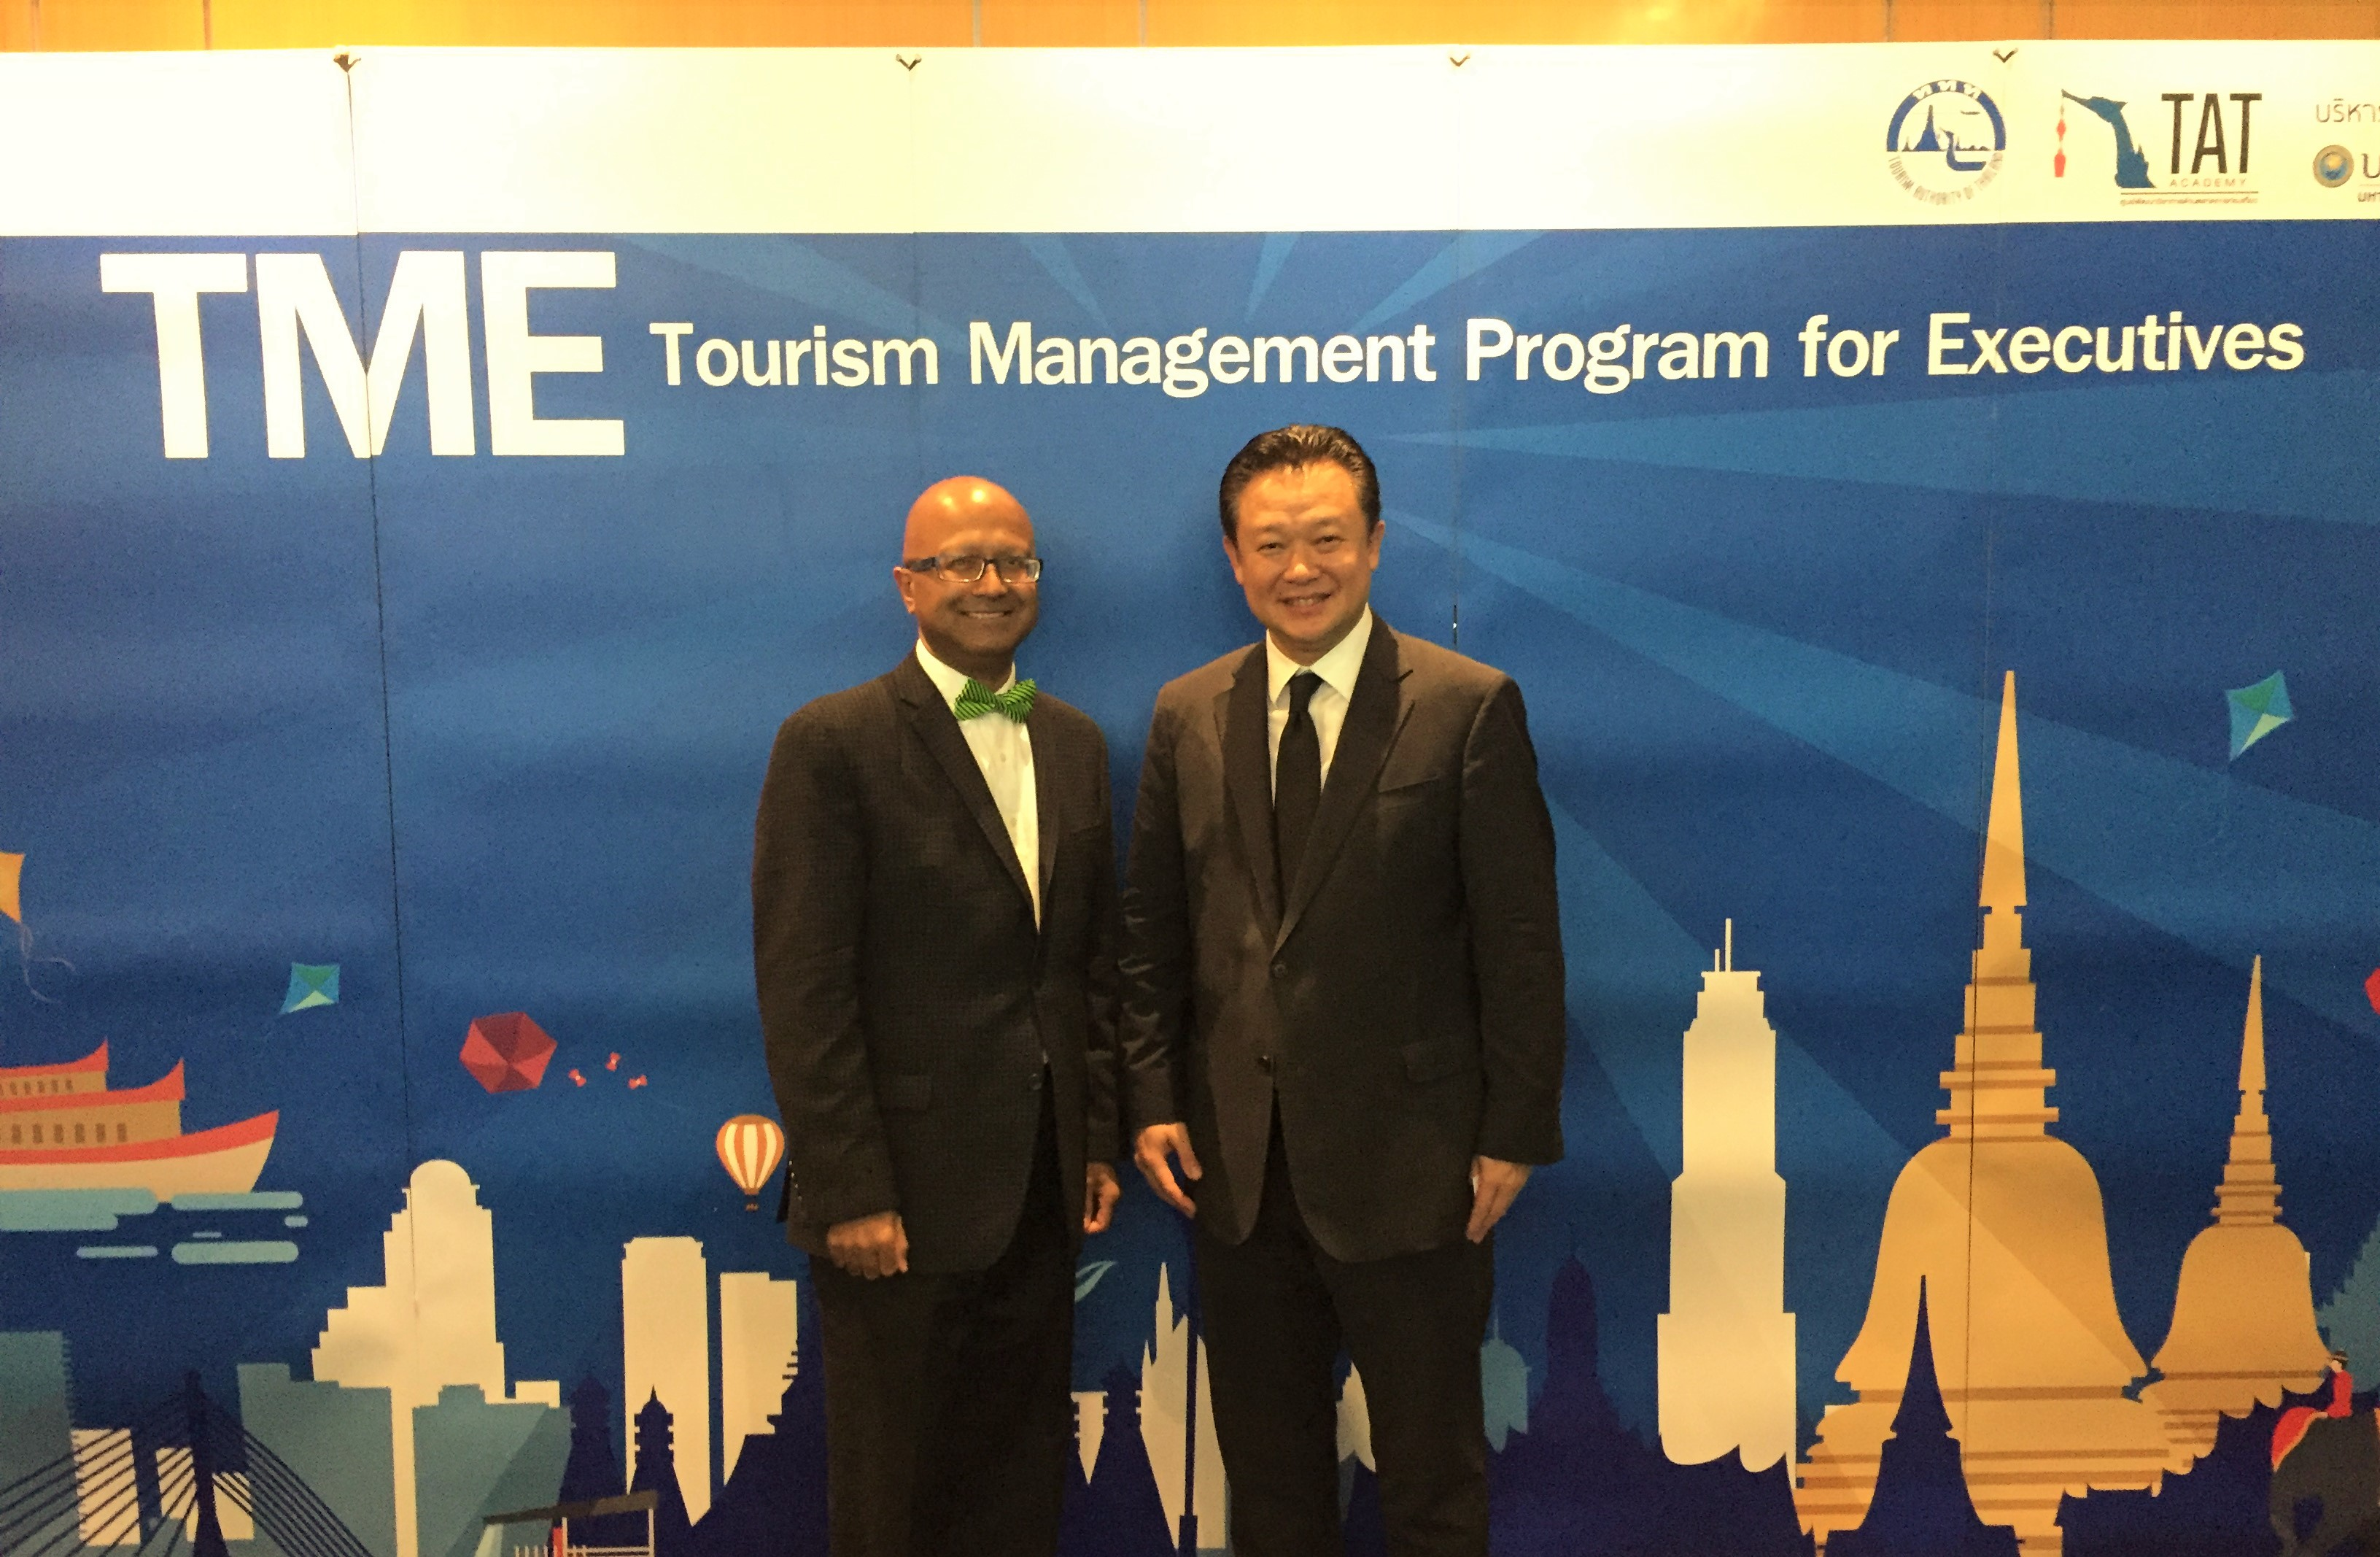 Dipra Jha (L) with Dr. Yuthasak Supasorn, Governor, Tourism Authority of Thailand